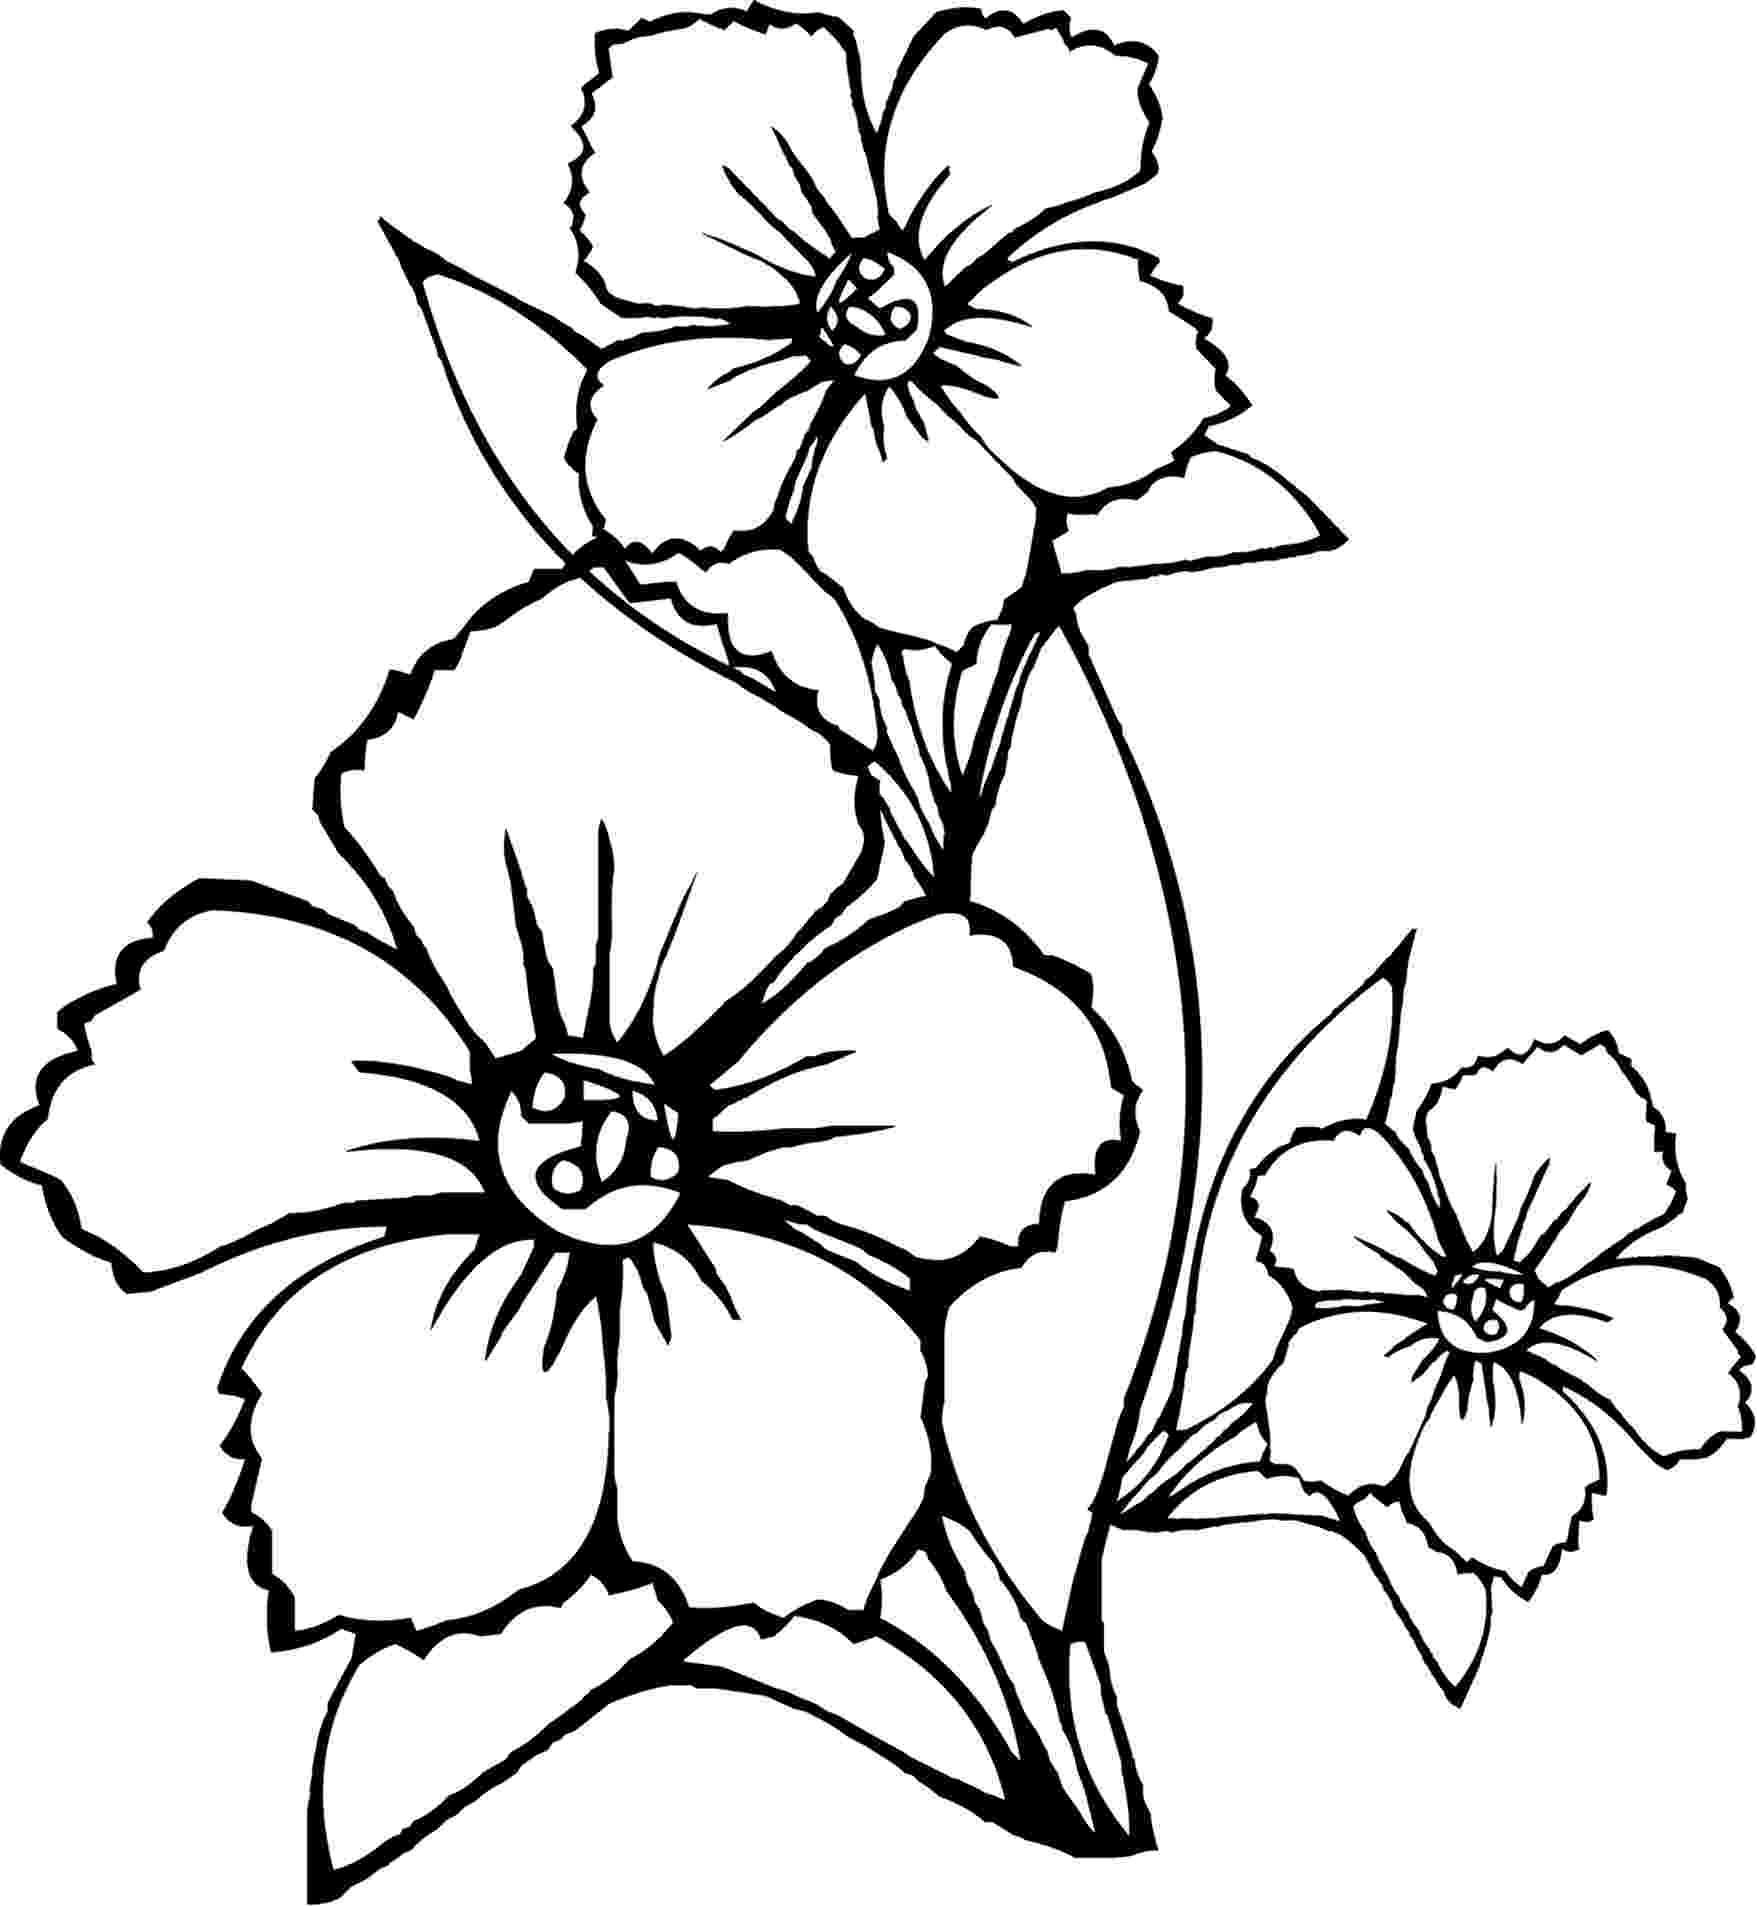 coloring images of flowers free printable flower coloring pages for kids best flowers of coloring images